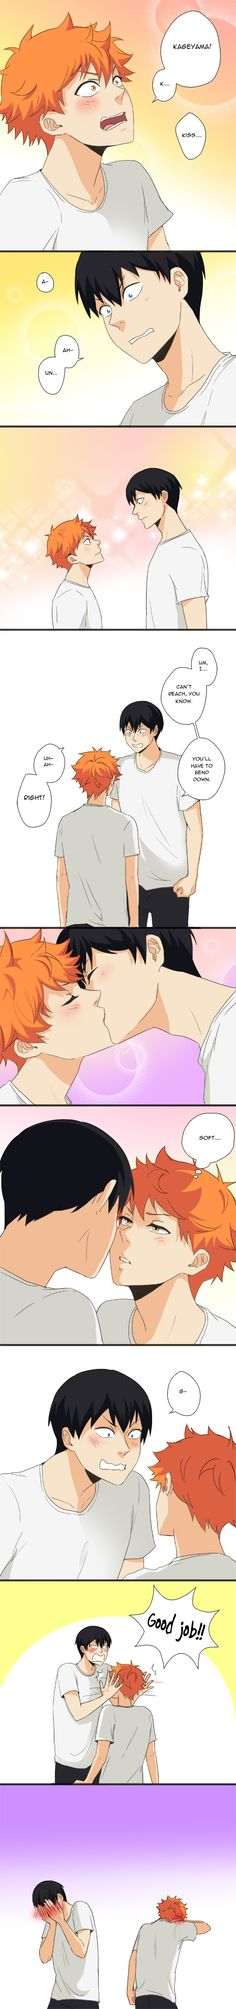 KageHina - First Kiss by Amanduur.deviantart.com on @DeviantArt